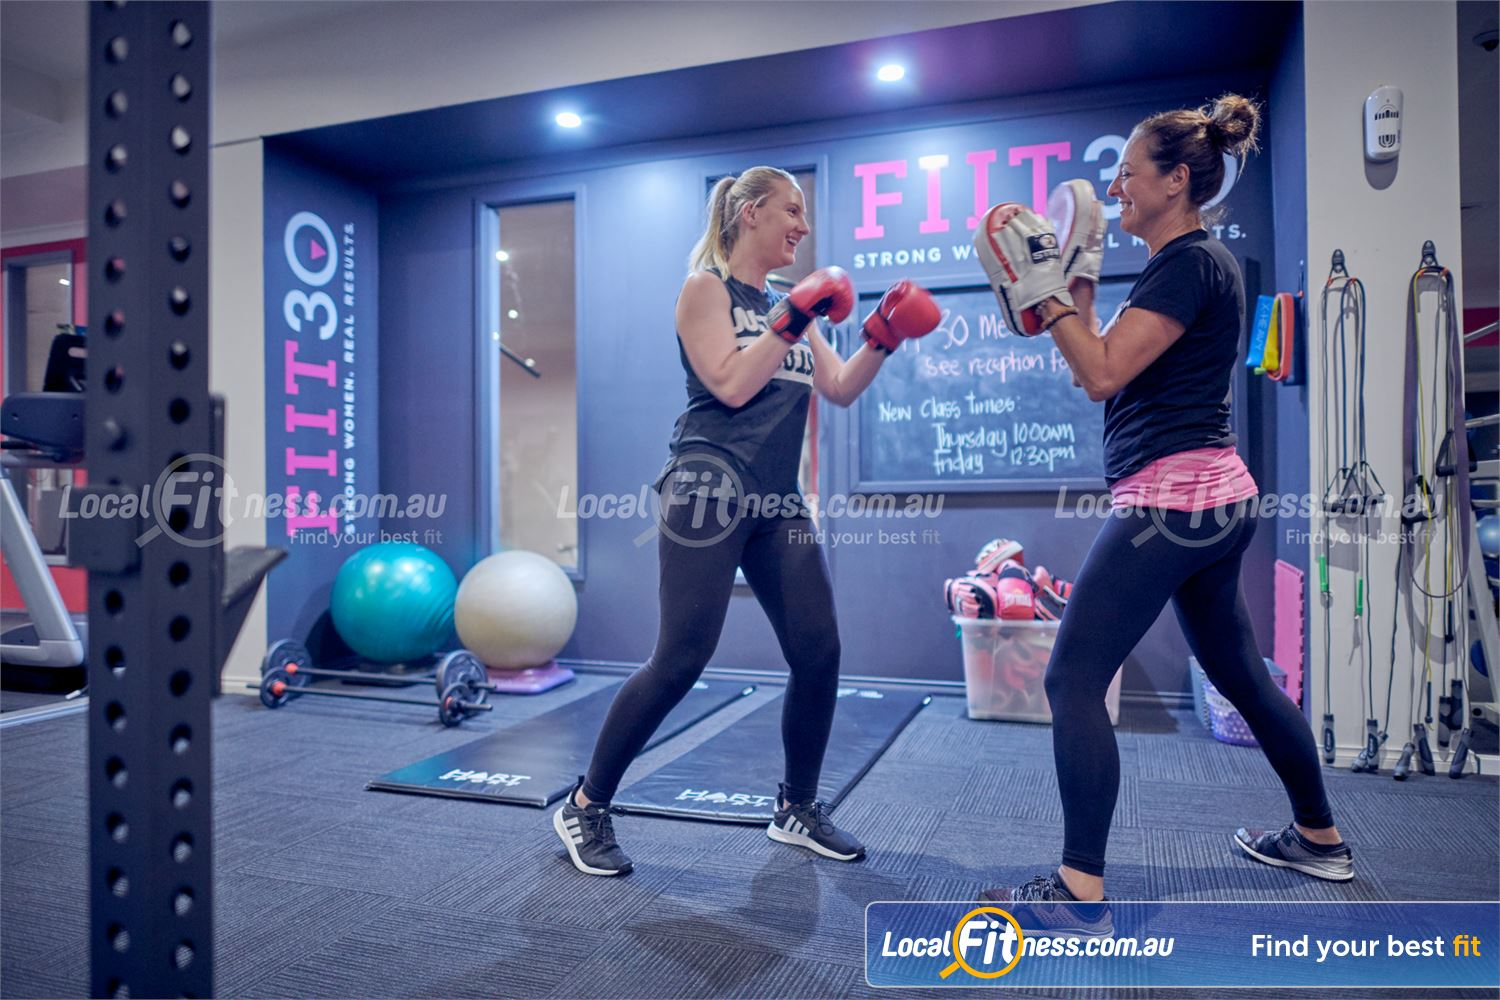 Fernwood Fitness Bulleen Challenge your fitness with a womens boxing workout in Bulleen.